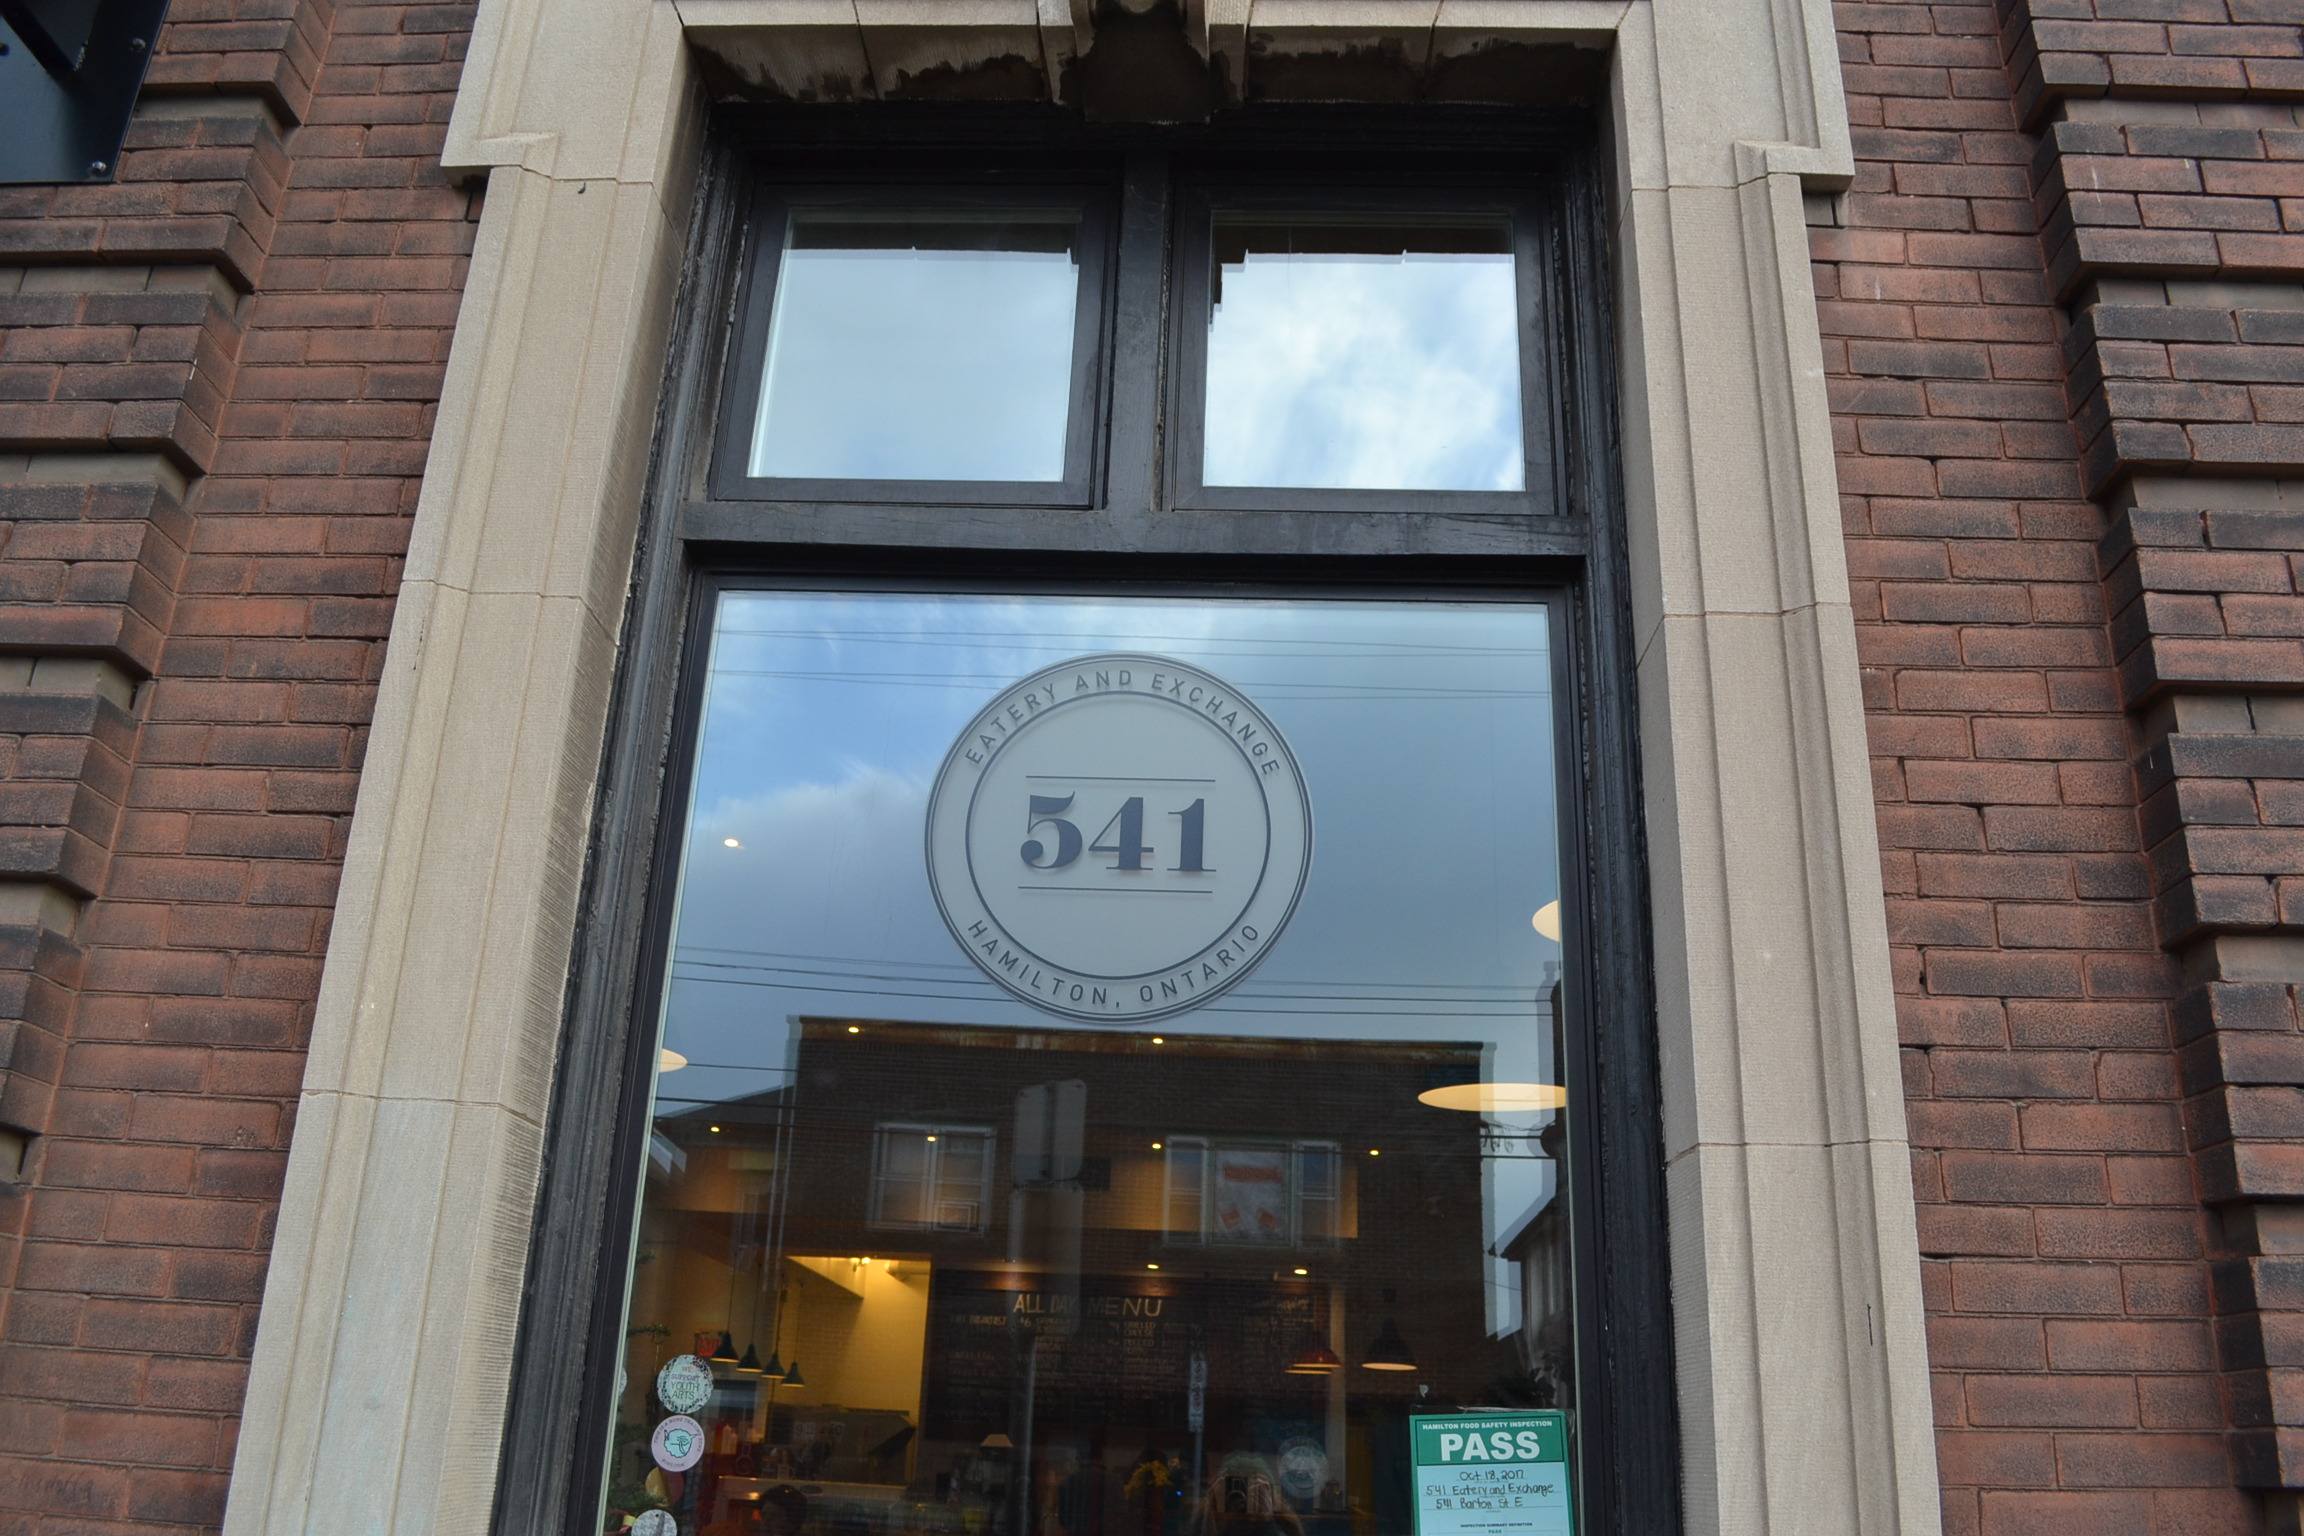 541 Eatery & Exchange  541 is a social enterprise seeking to address its neighbourhood's needs by providing affordable healthy meals.